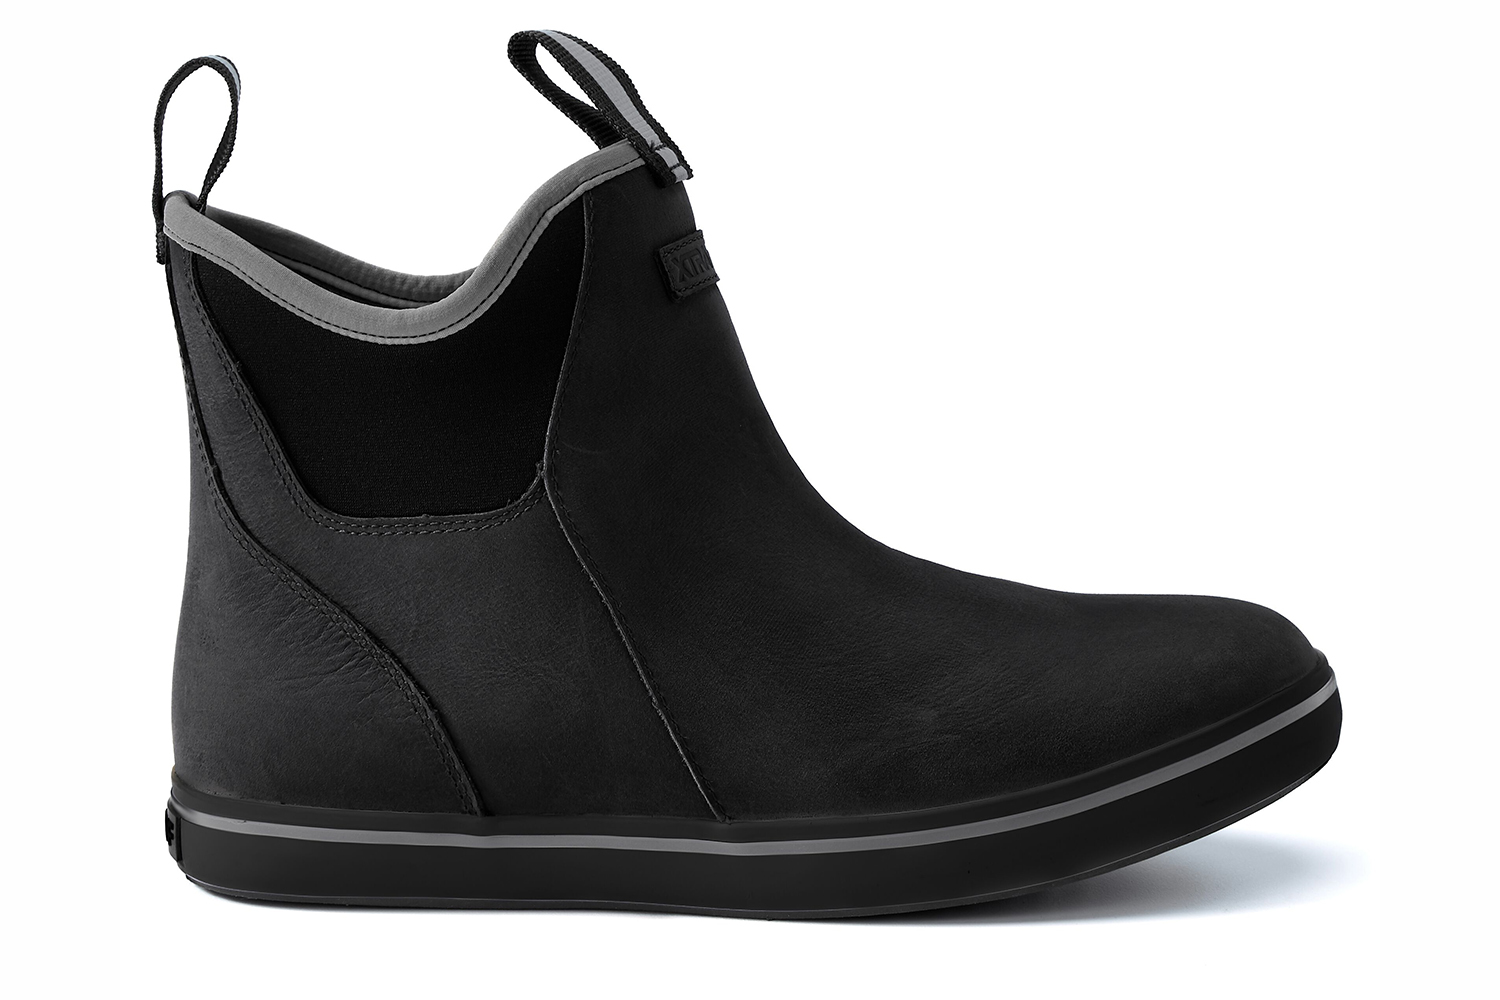 The Best Rain Boots: Xtratuf Leather Ankle Deck Boot